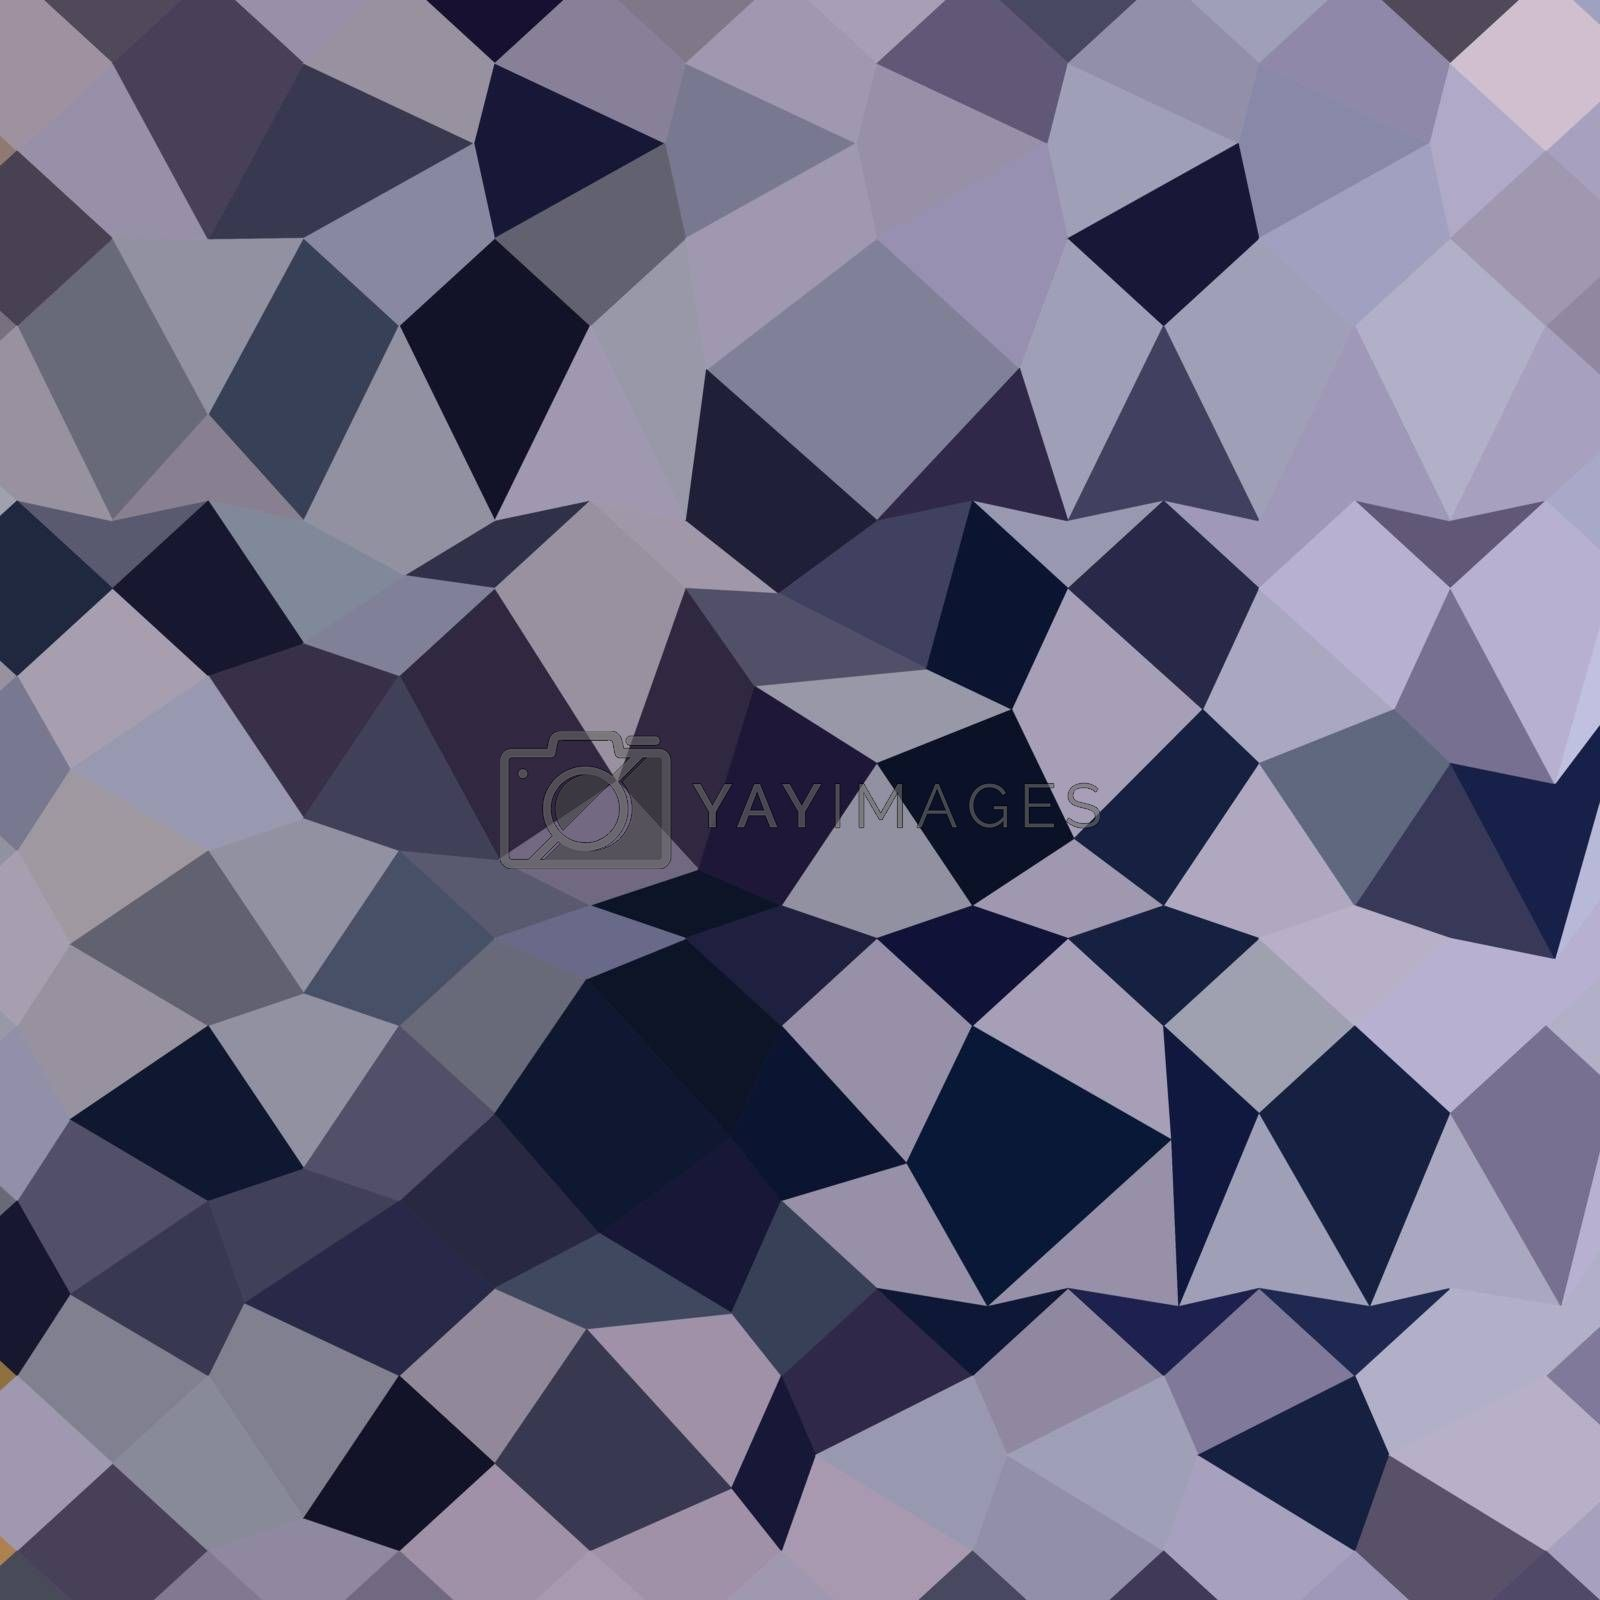 Royalty free image of Licorice Black Abstract Low Polygon Background by patrimonio